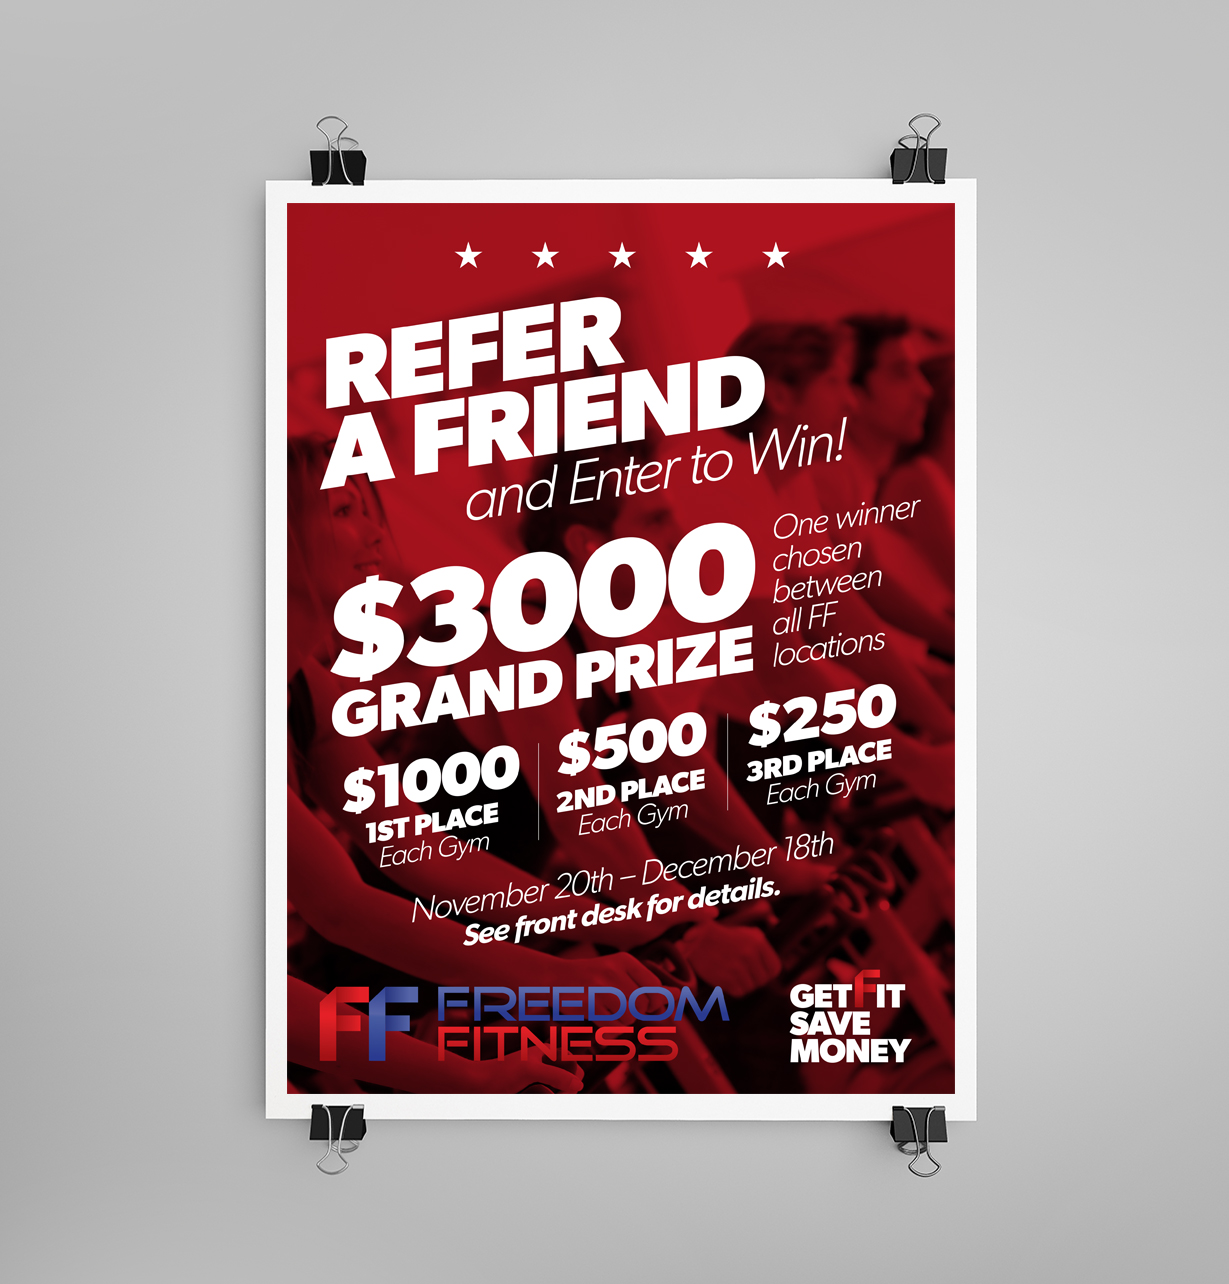 Refer a Friend poster for Freedom fitness can2 creative company